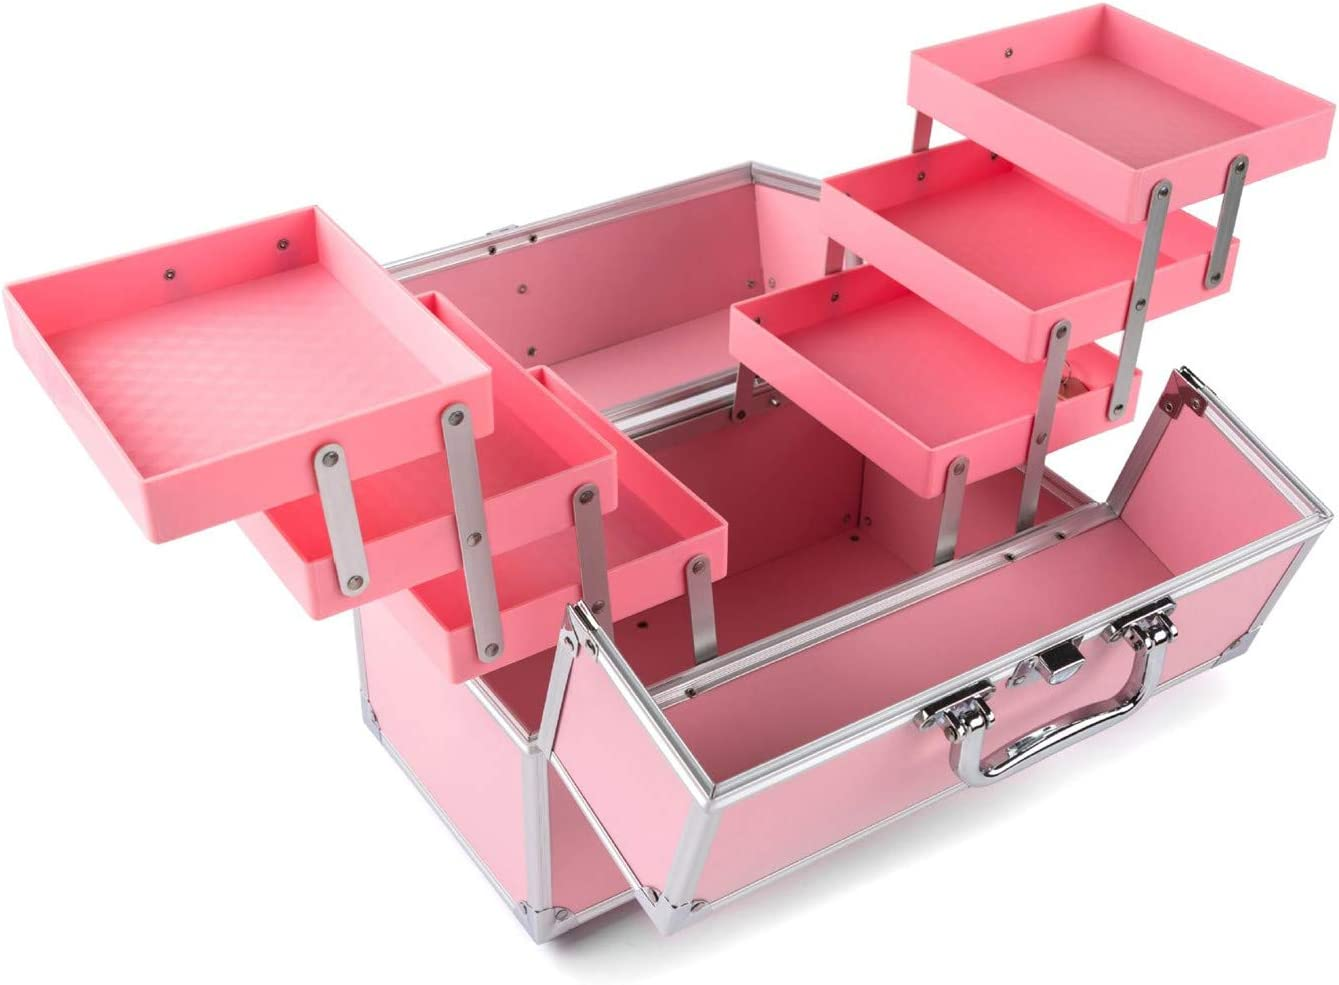 AFYH Large Makeup Box 6 Case Organiser Trays San Diego Mall Cosmetic Recommended